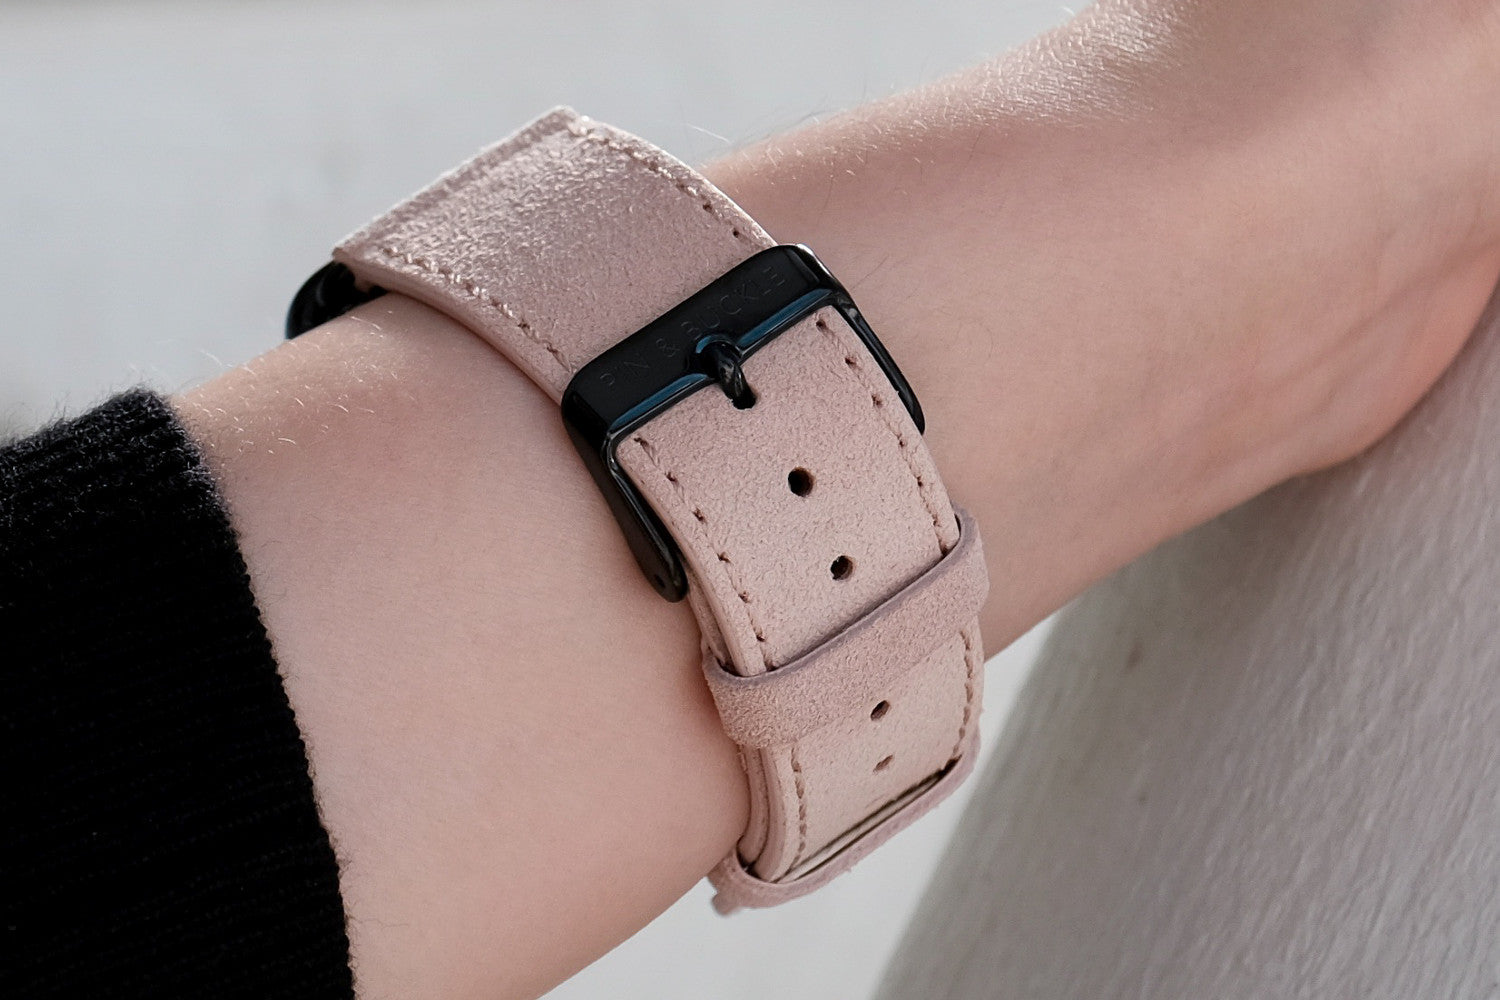 Pin and Buckle Apple Watch Bands - Velour - Suede Leather Apple Watch Band -  Peach - French Suede